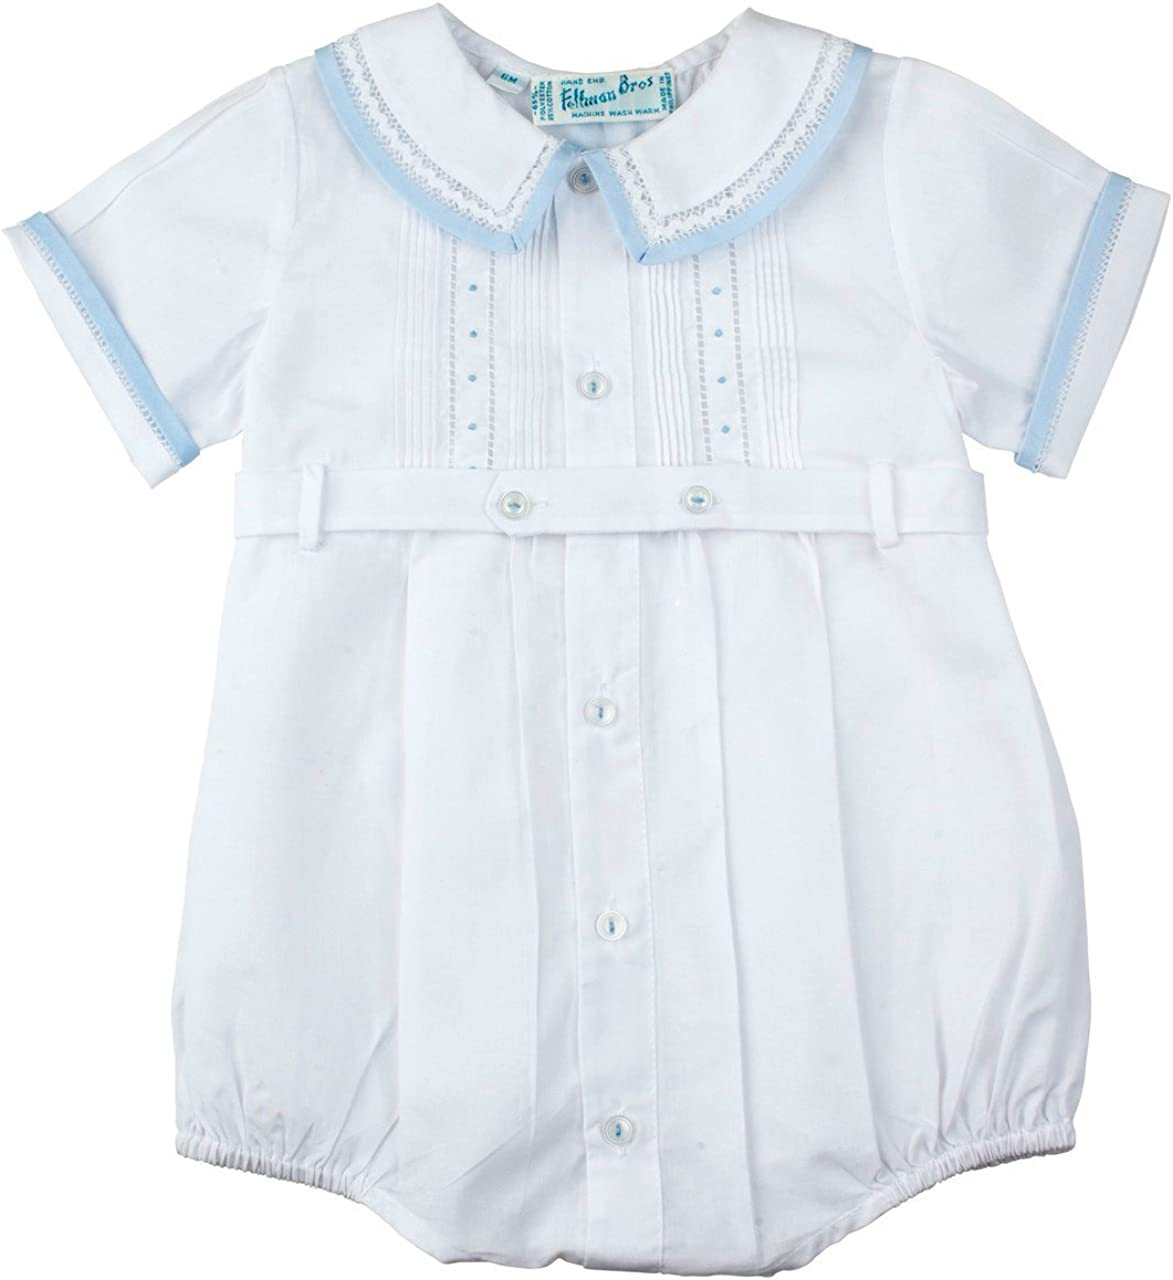 Feltman Brothers Boys White Baptism Romper Outfit with Collar